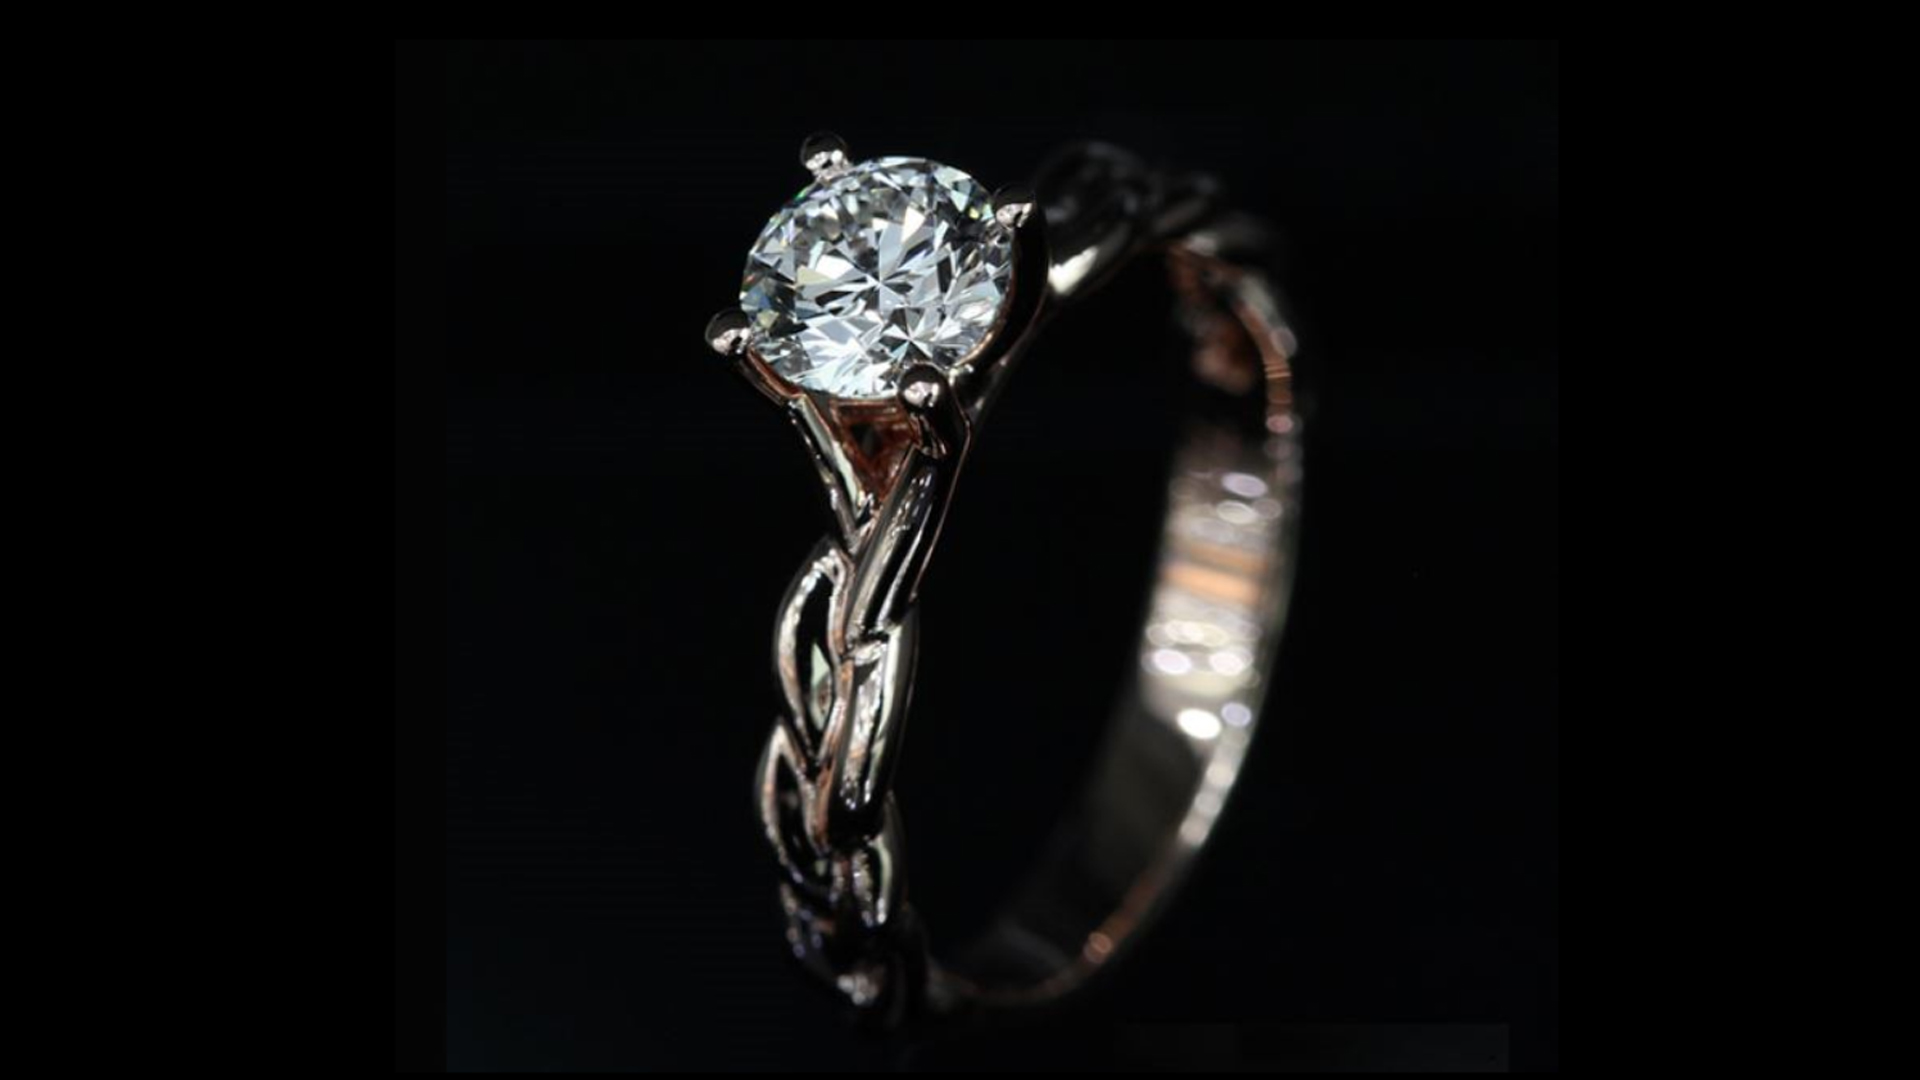 Unboxing Rose Gold Solitaire Diamond Ring – Super Ideal Cut